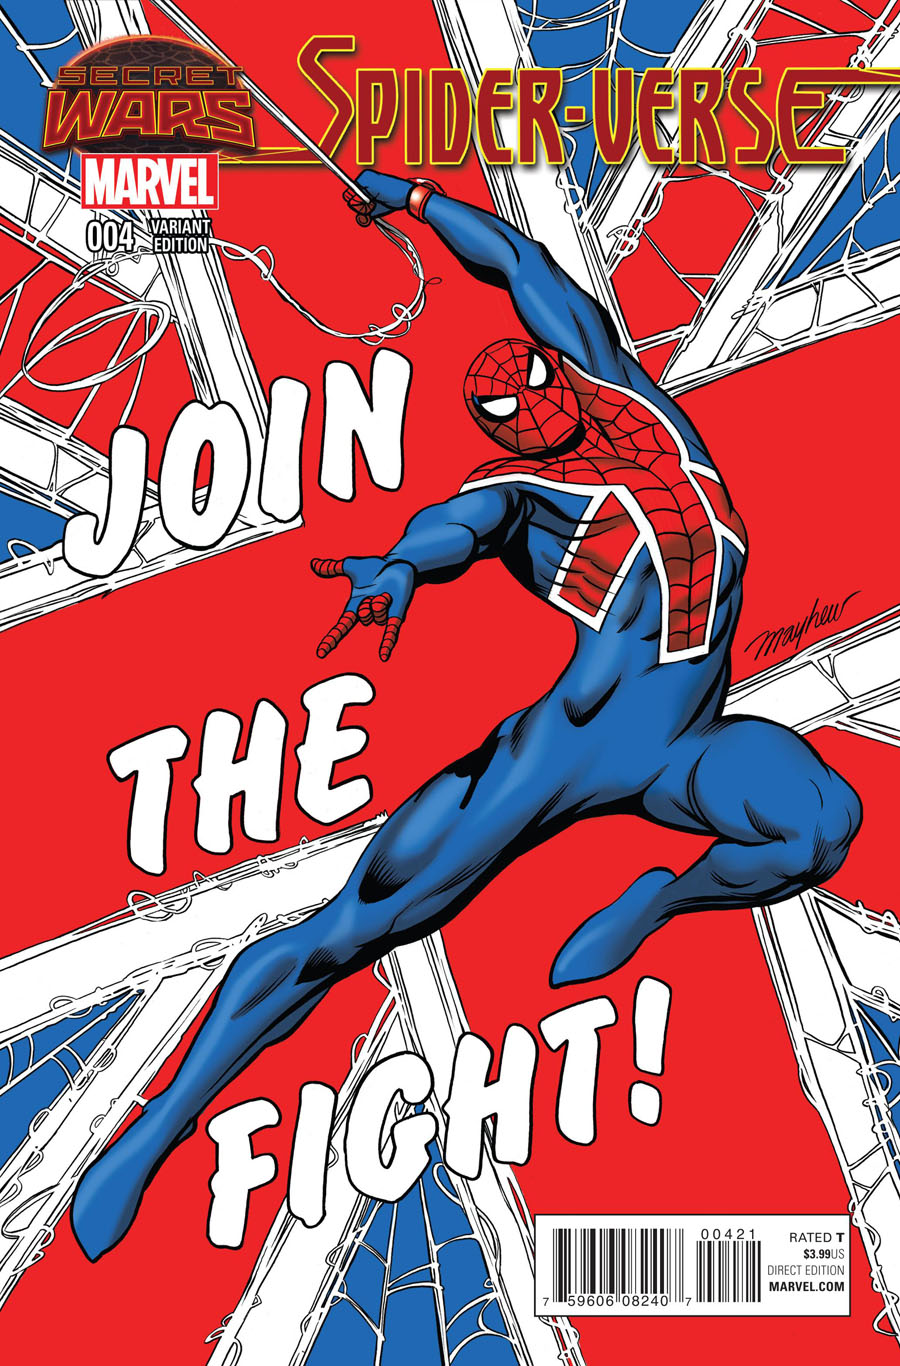 Spider-Verse Vol 2 #4 Cover B Incentive Mike Mayhew Variant Cover (Secret Wars Warzones Tie-In)